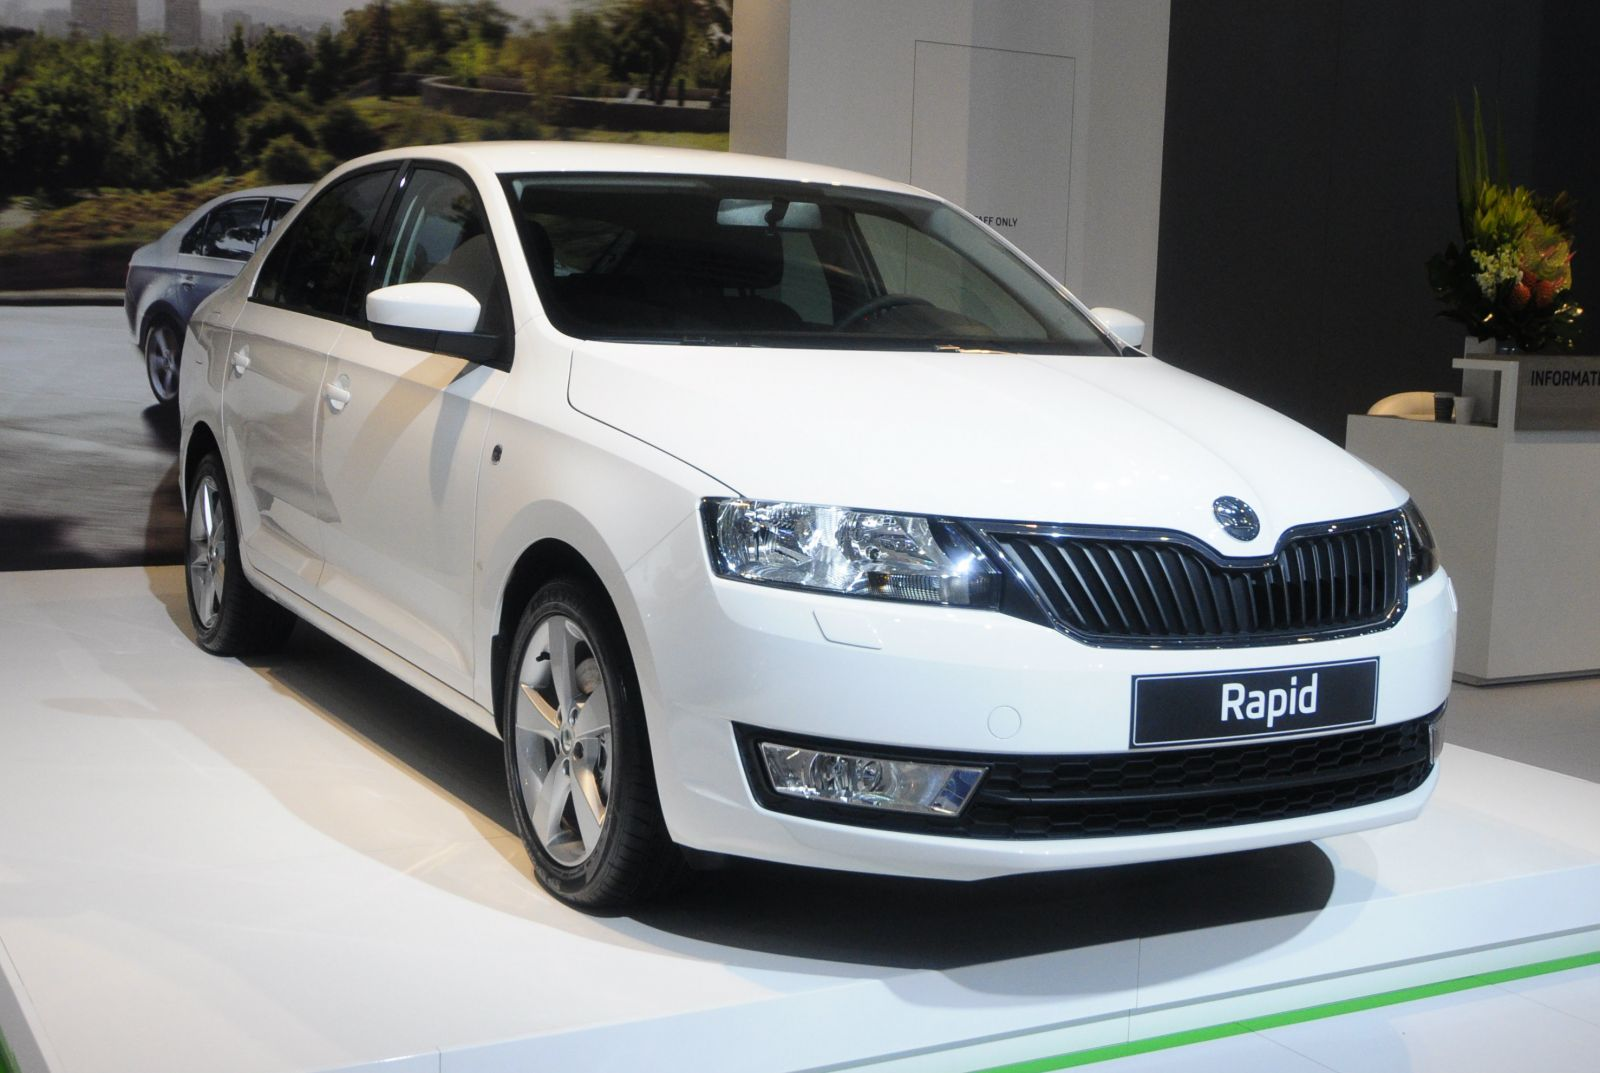 skoda rapid history photos on better parts ltd. Black Bedroom Furniture Sets. Home Design Ideas